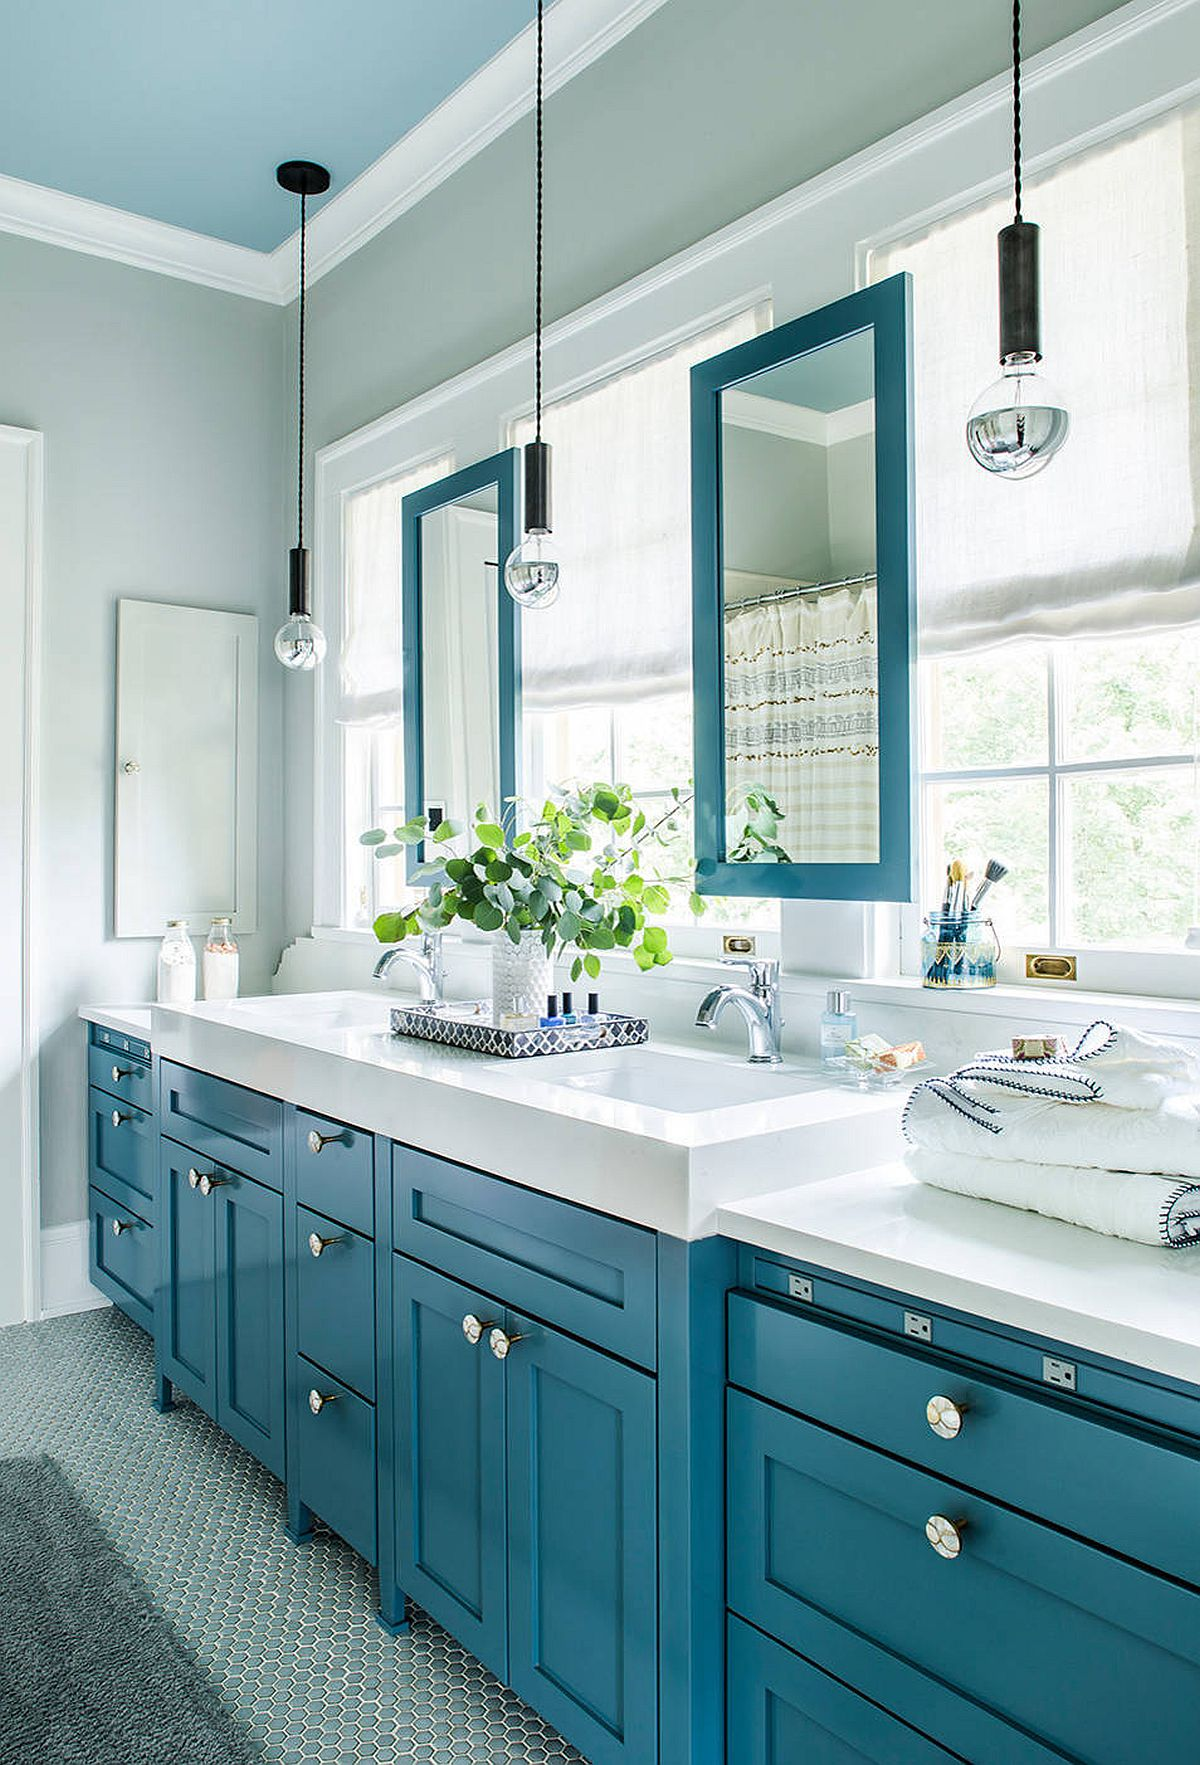 Gray bathroom with blue cabinets, mirror frames and ceiling